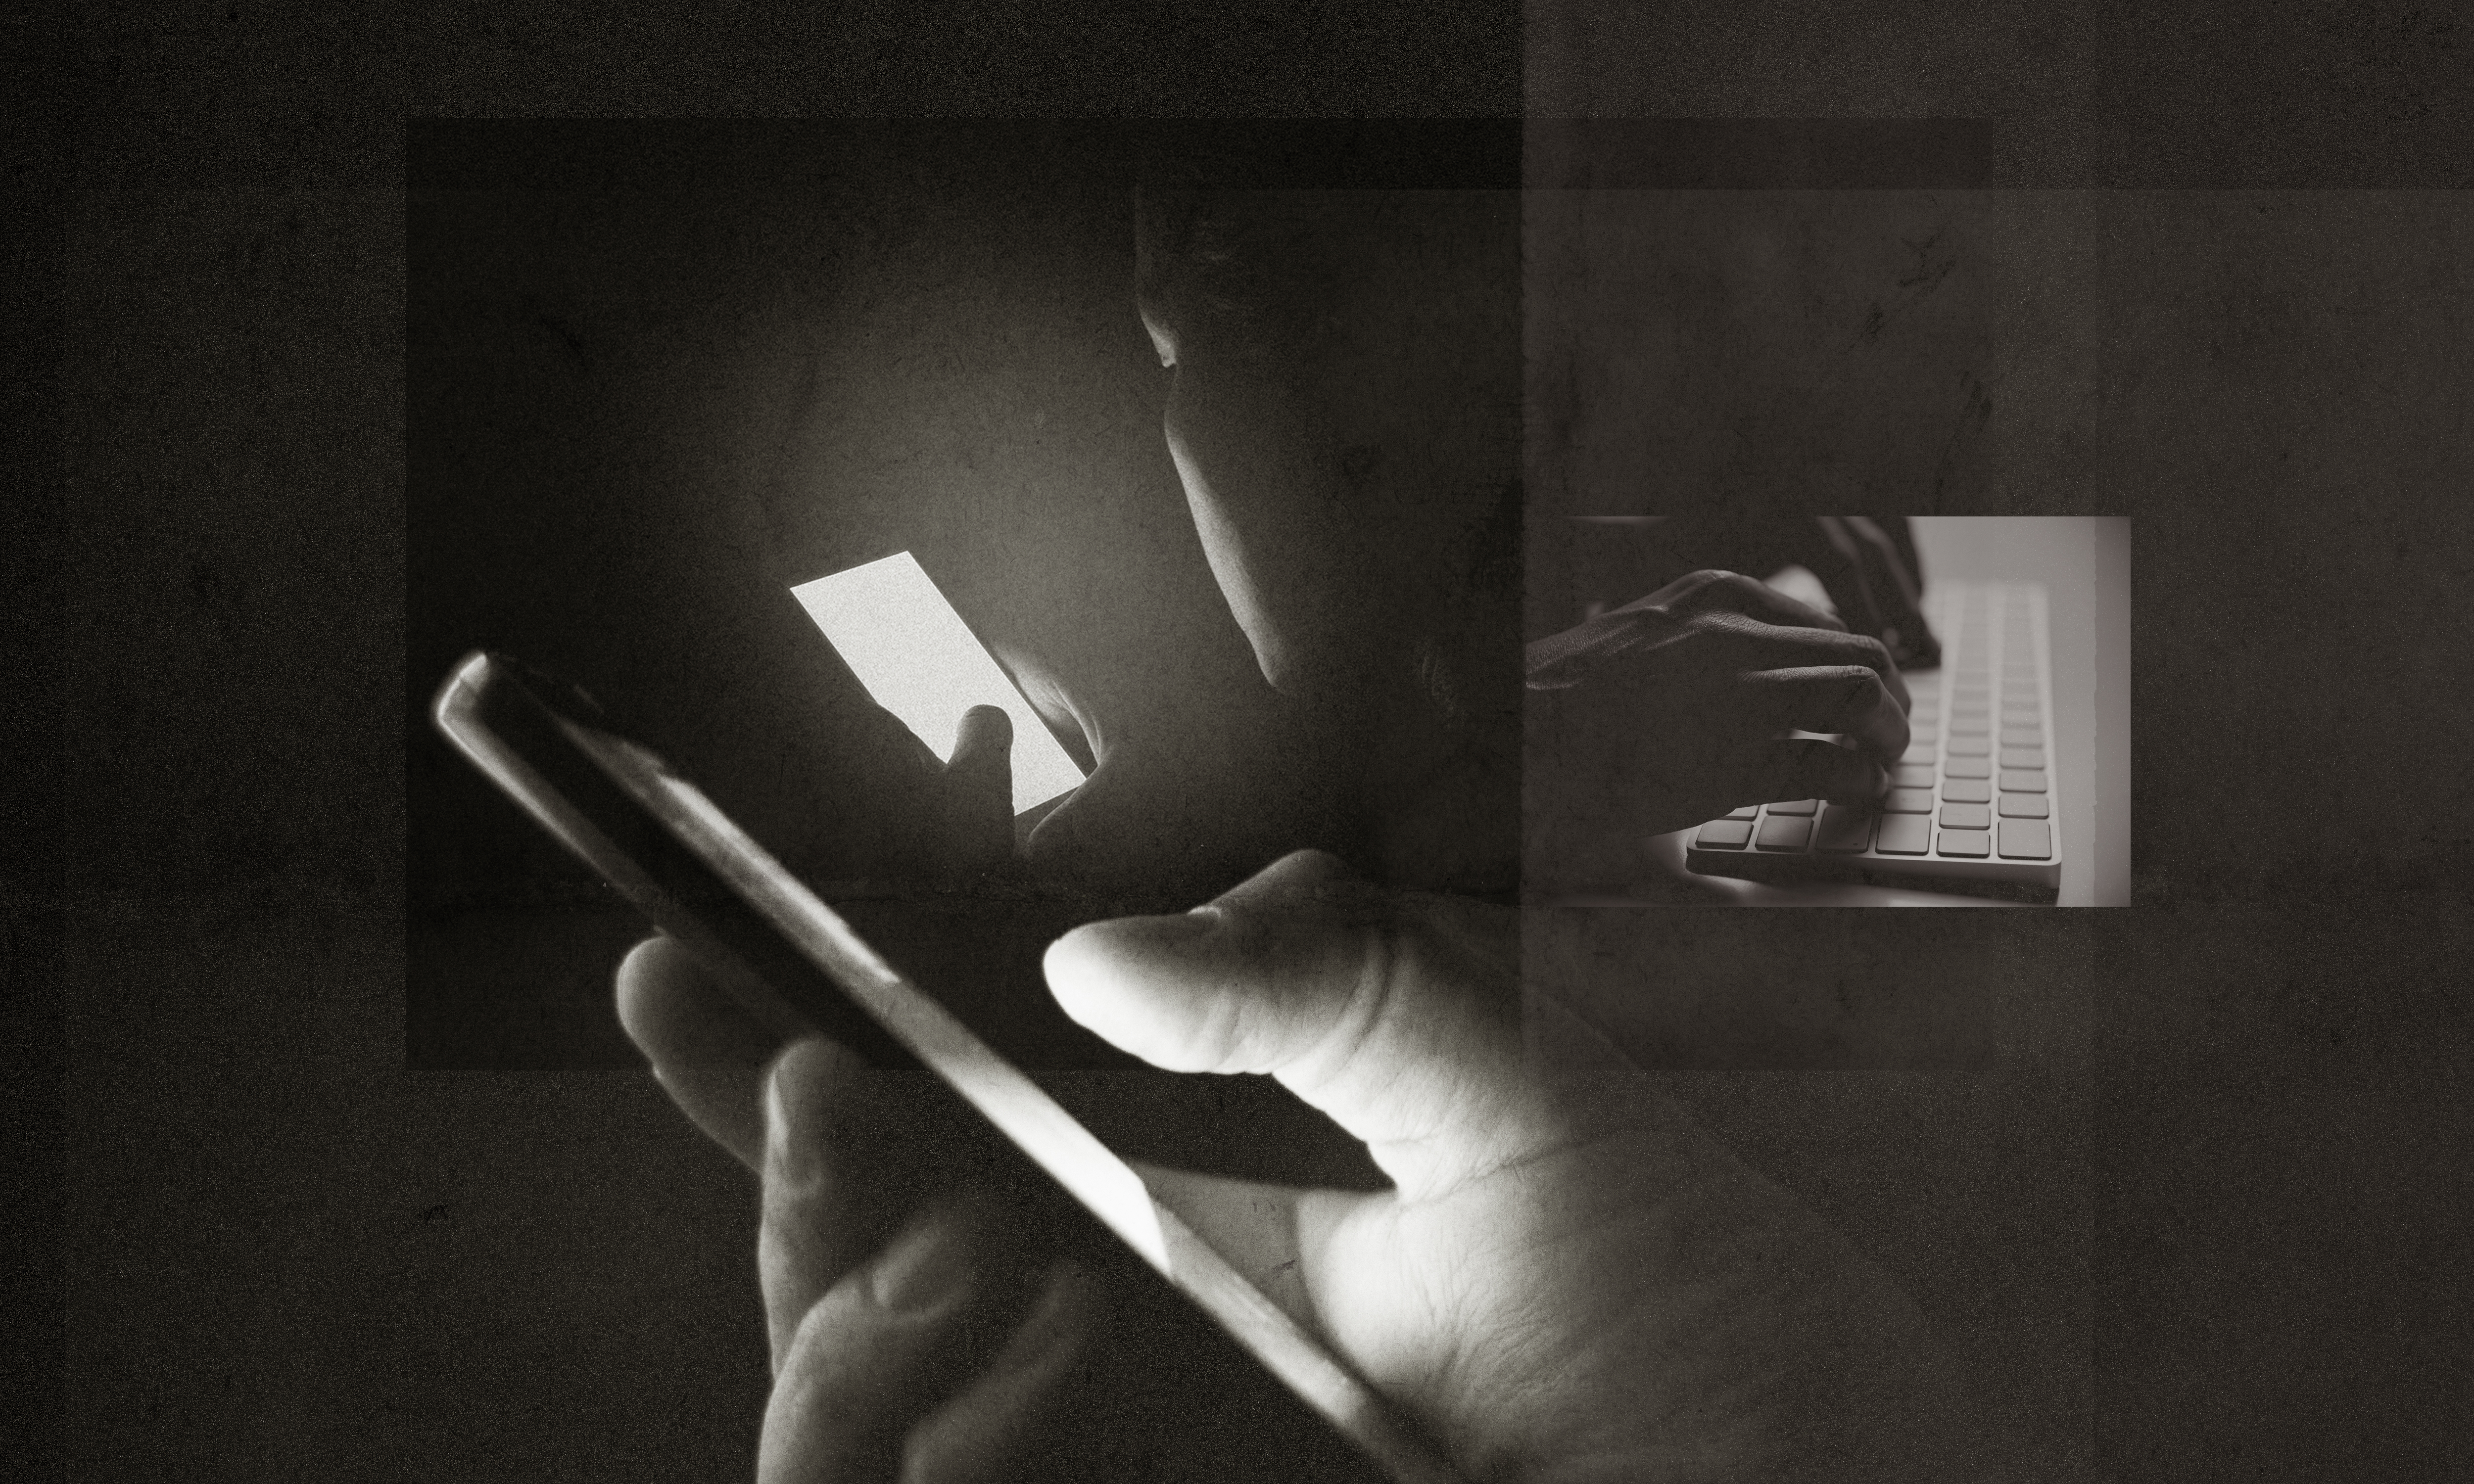 A photo-illustration of a hand holding a cellphone and hands on a computer keyboard.